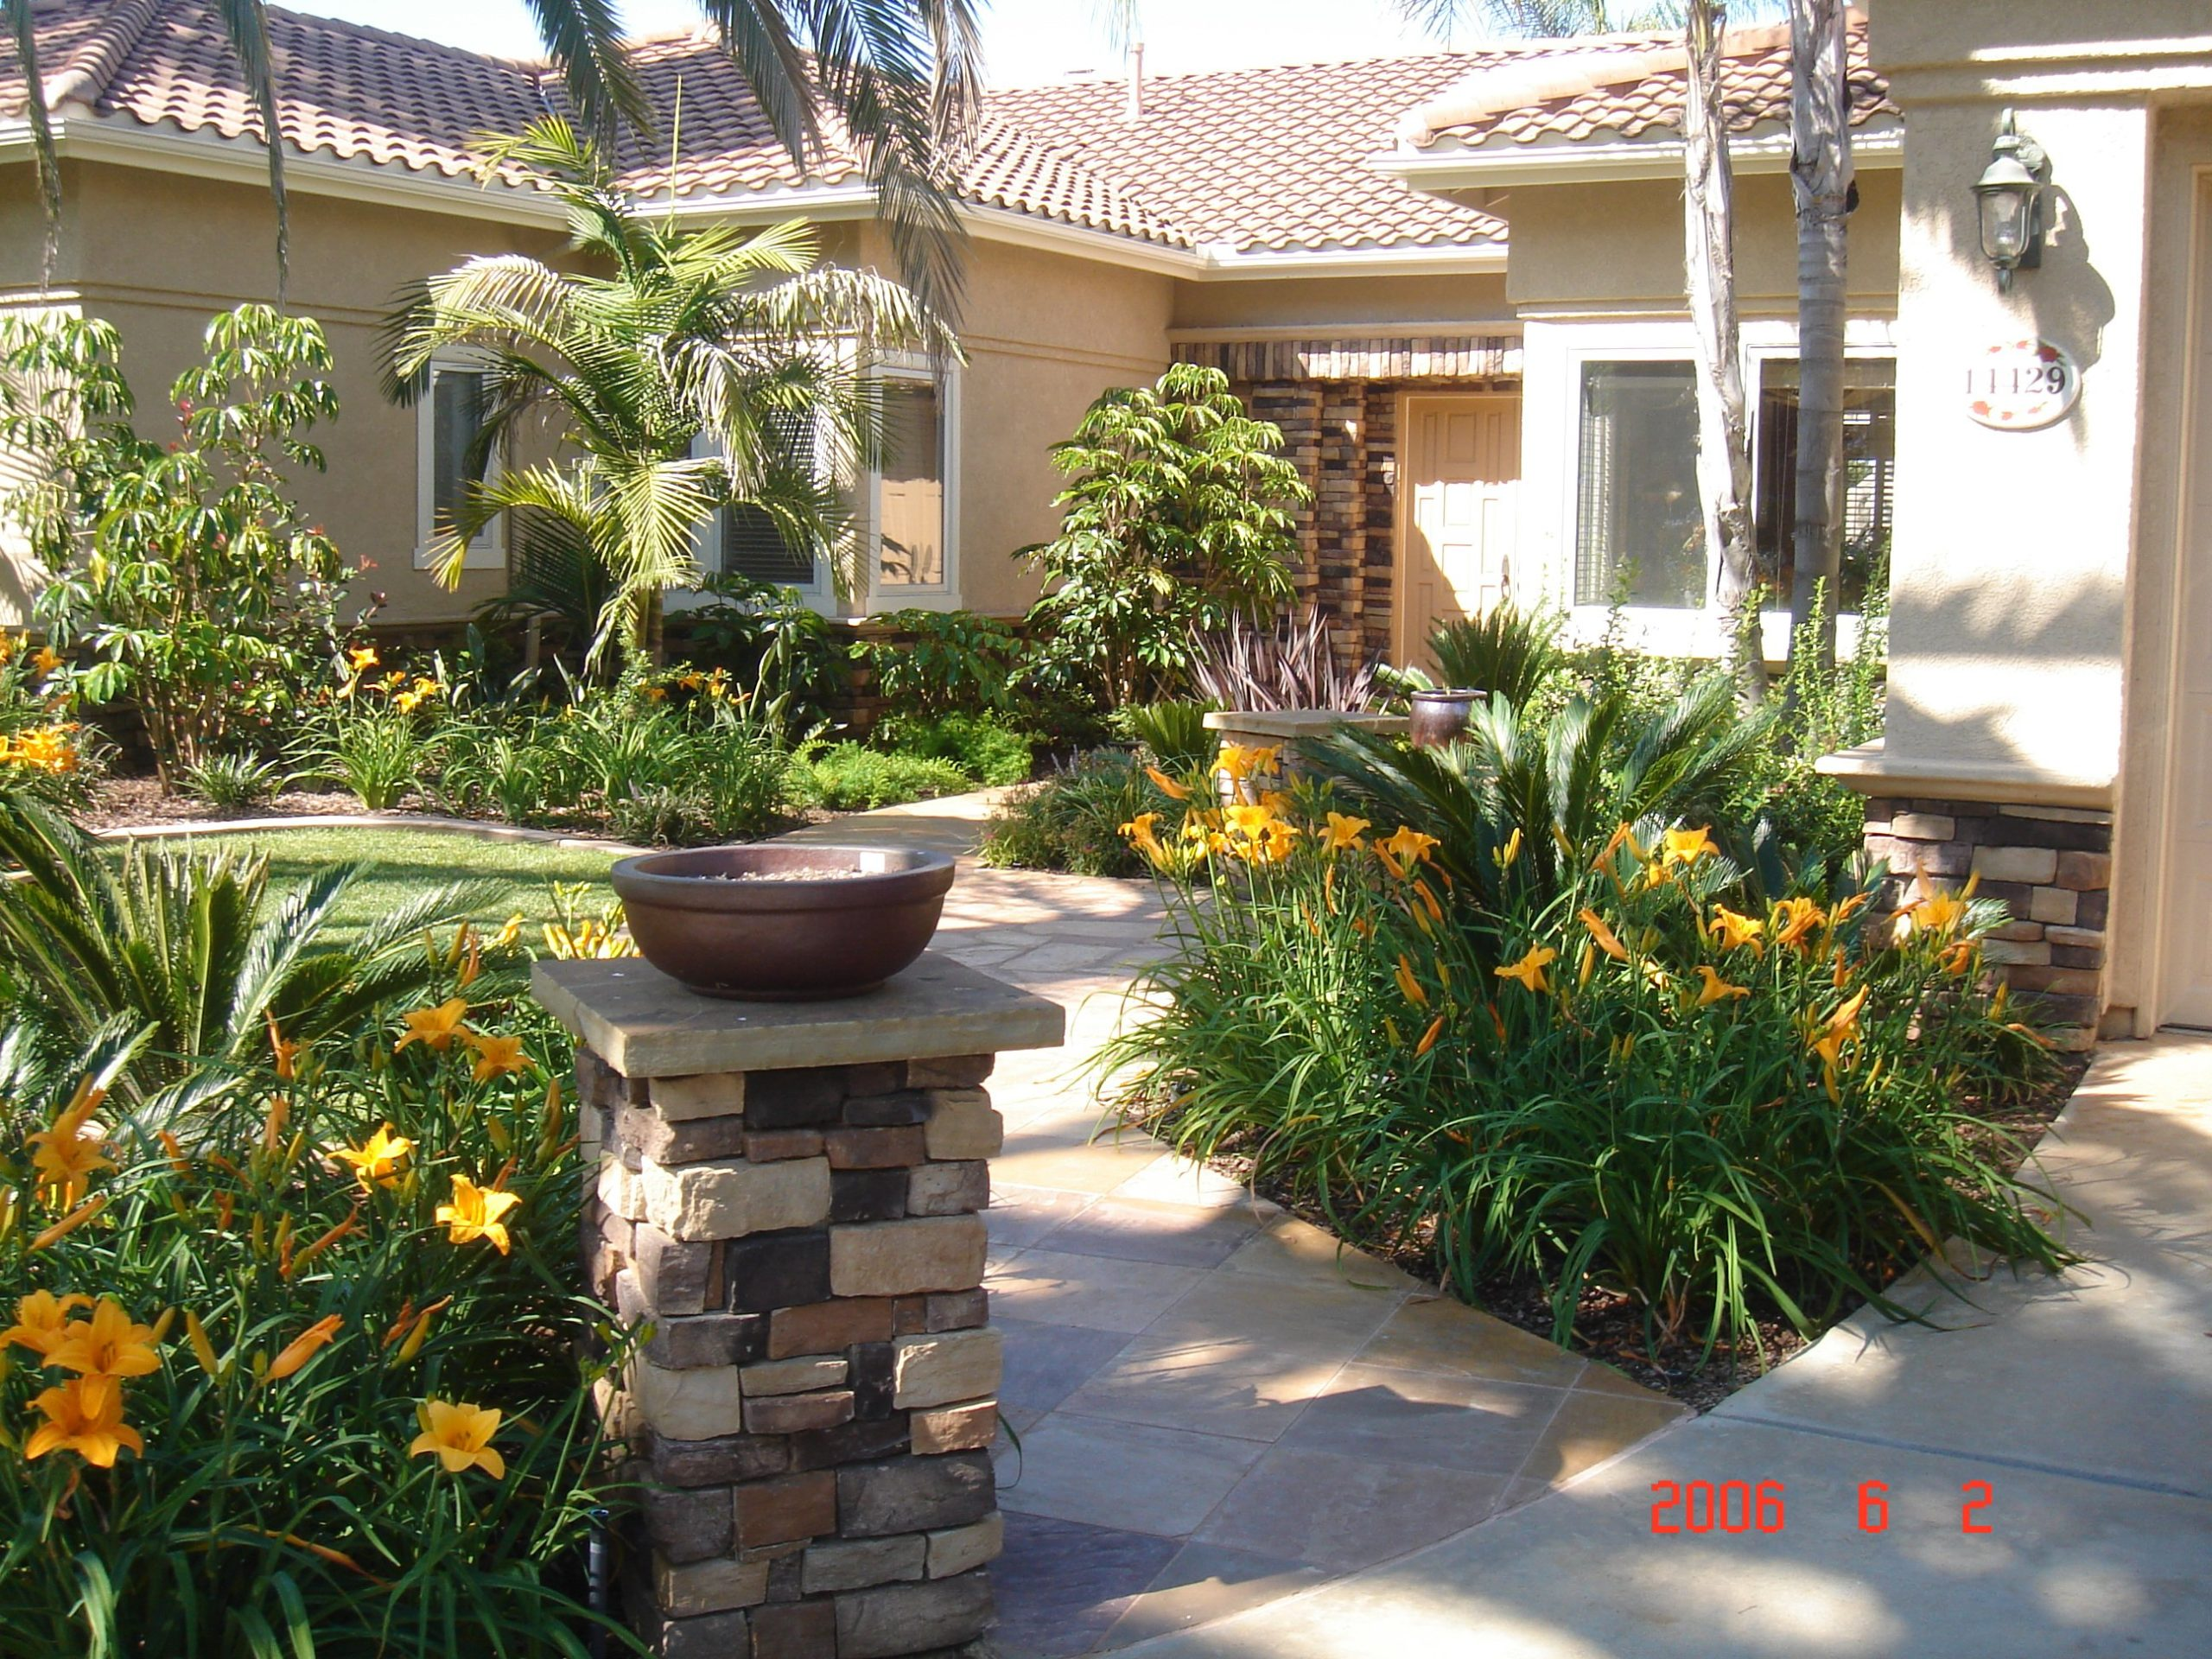 Landscaping outside of California home